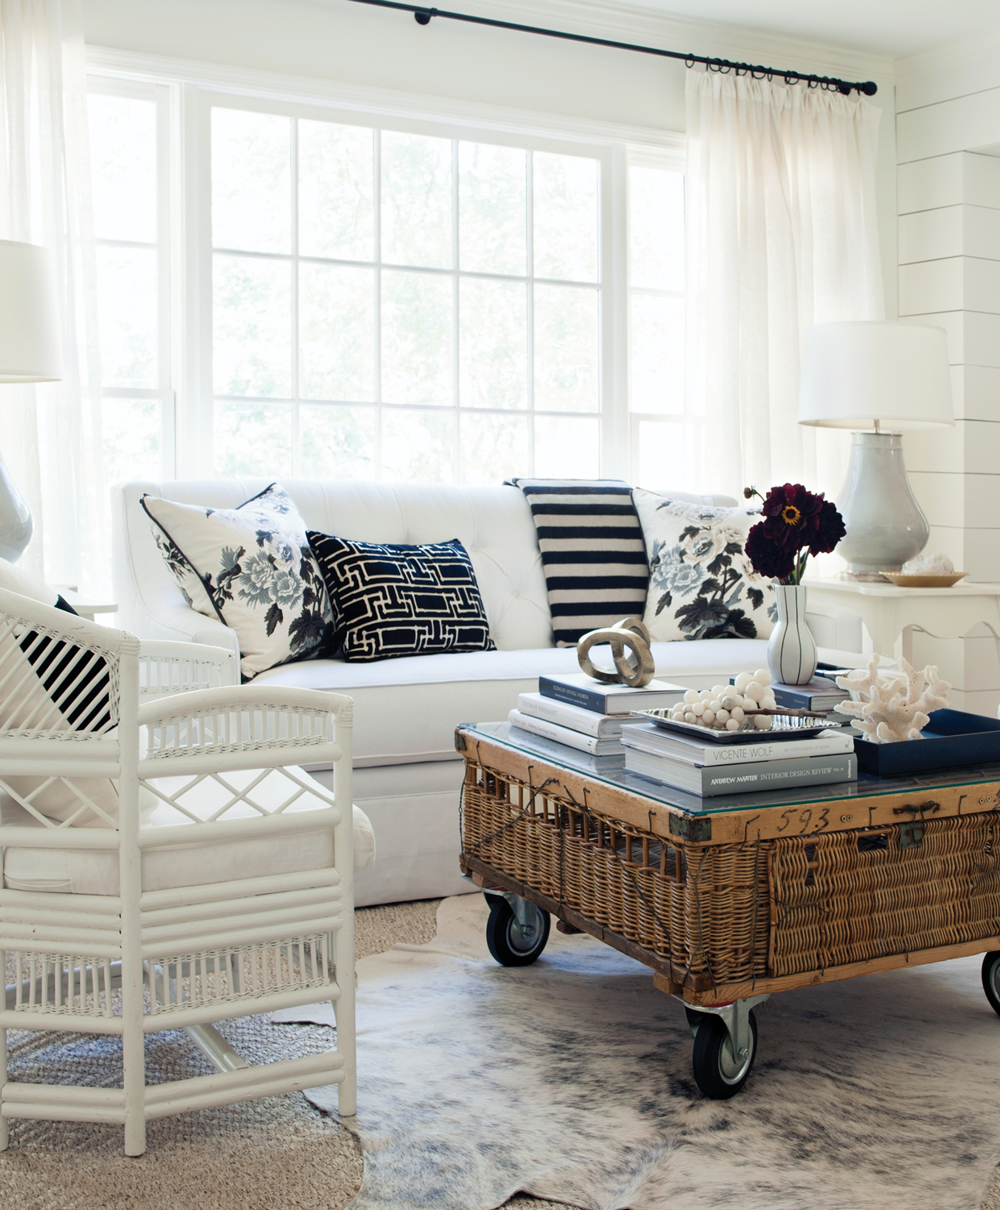 sherry furniture. A Look Inside Her Sophisticated Peachtree Park Cottage Sherry Furniture